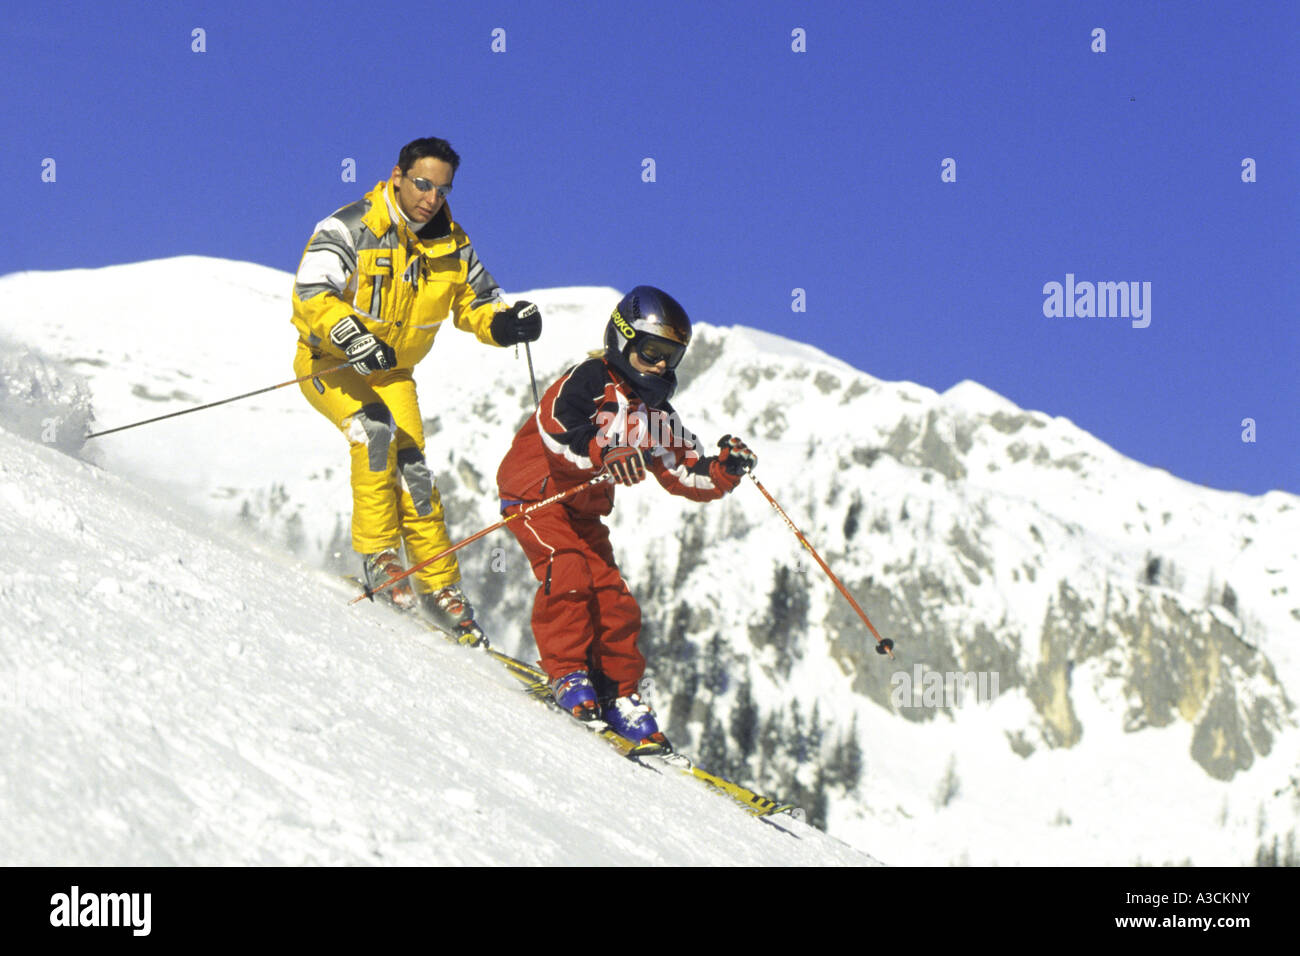 two skier running downhill, Austria, Alps - Stock Image